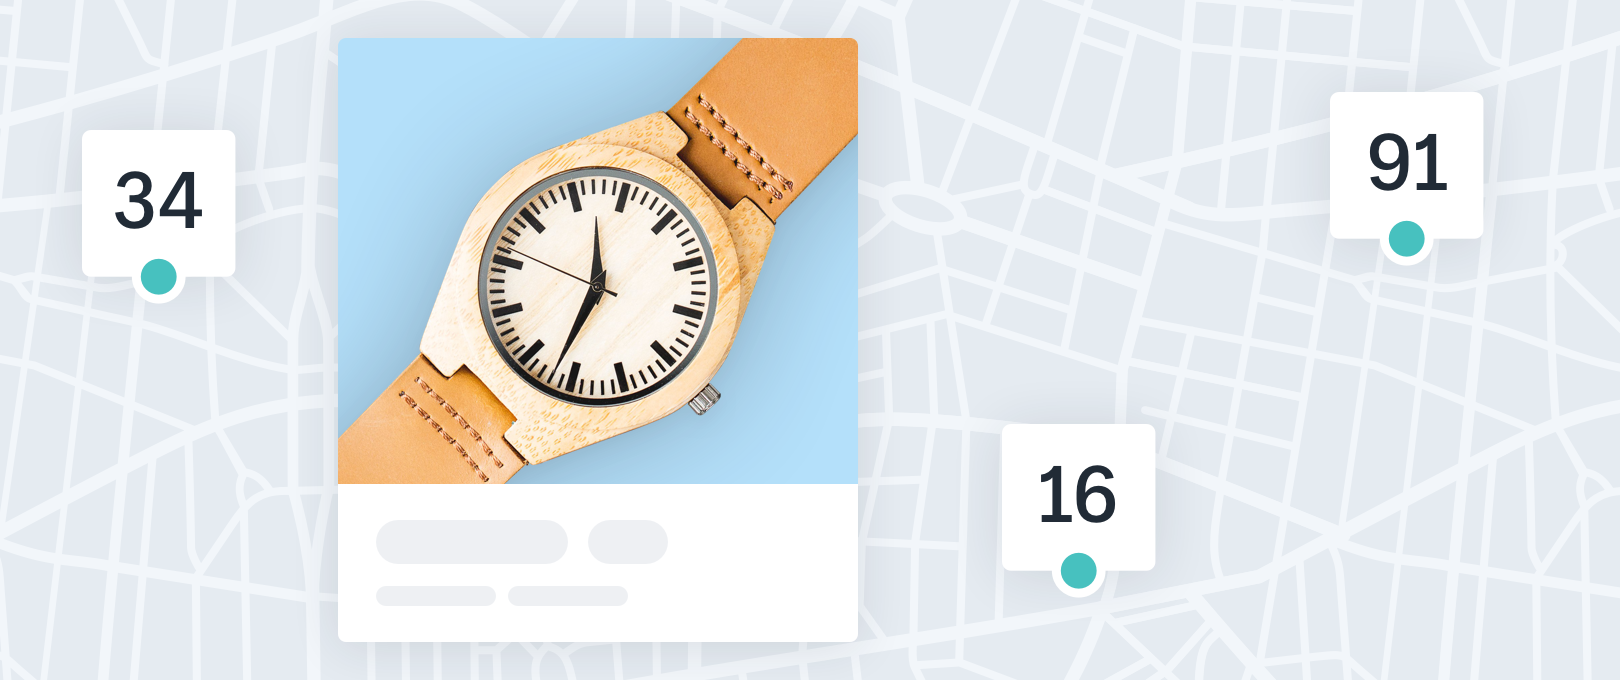 If you sell in multiple locations, you can now manage your inventory by location in Shopify